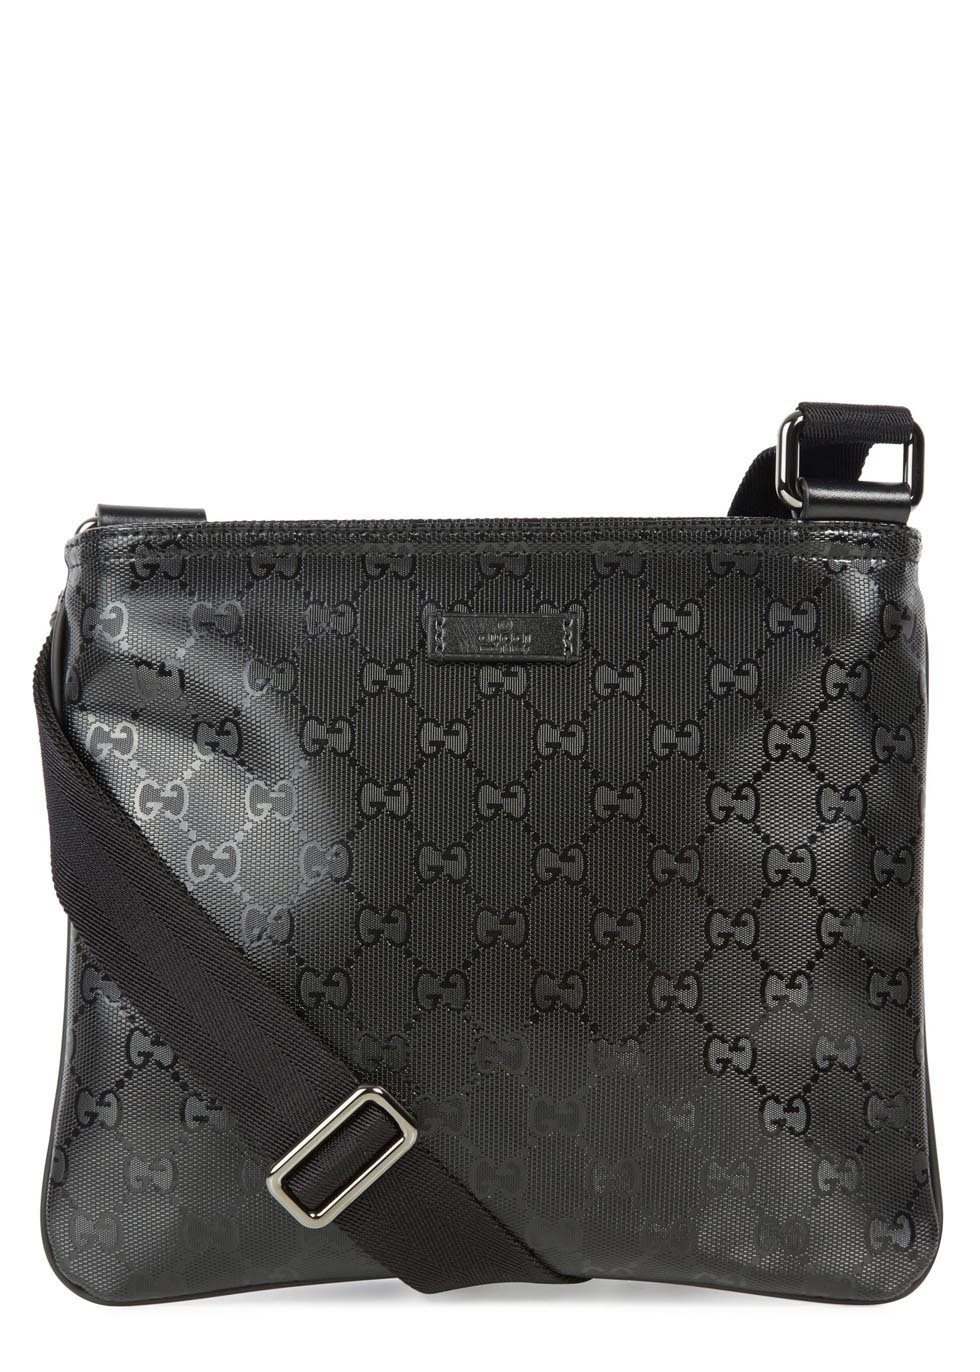 e58b2e6666397e Gucci Black Monogrammed Coated Canvas Messenger Bag in Black for Men ...